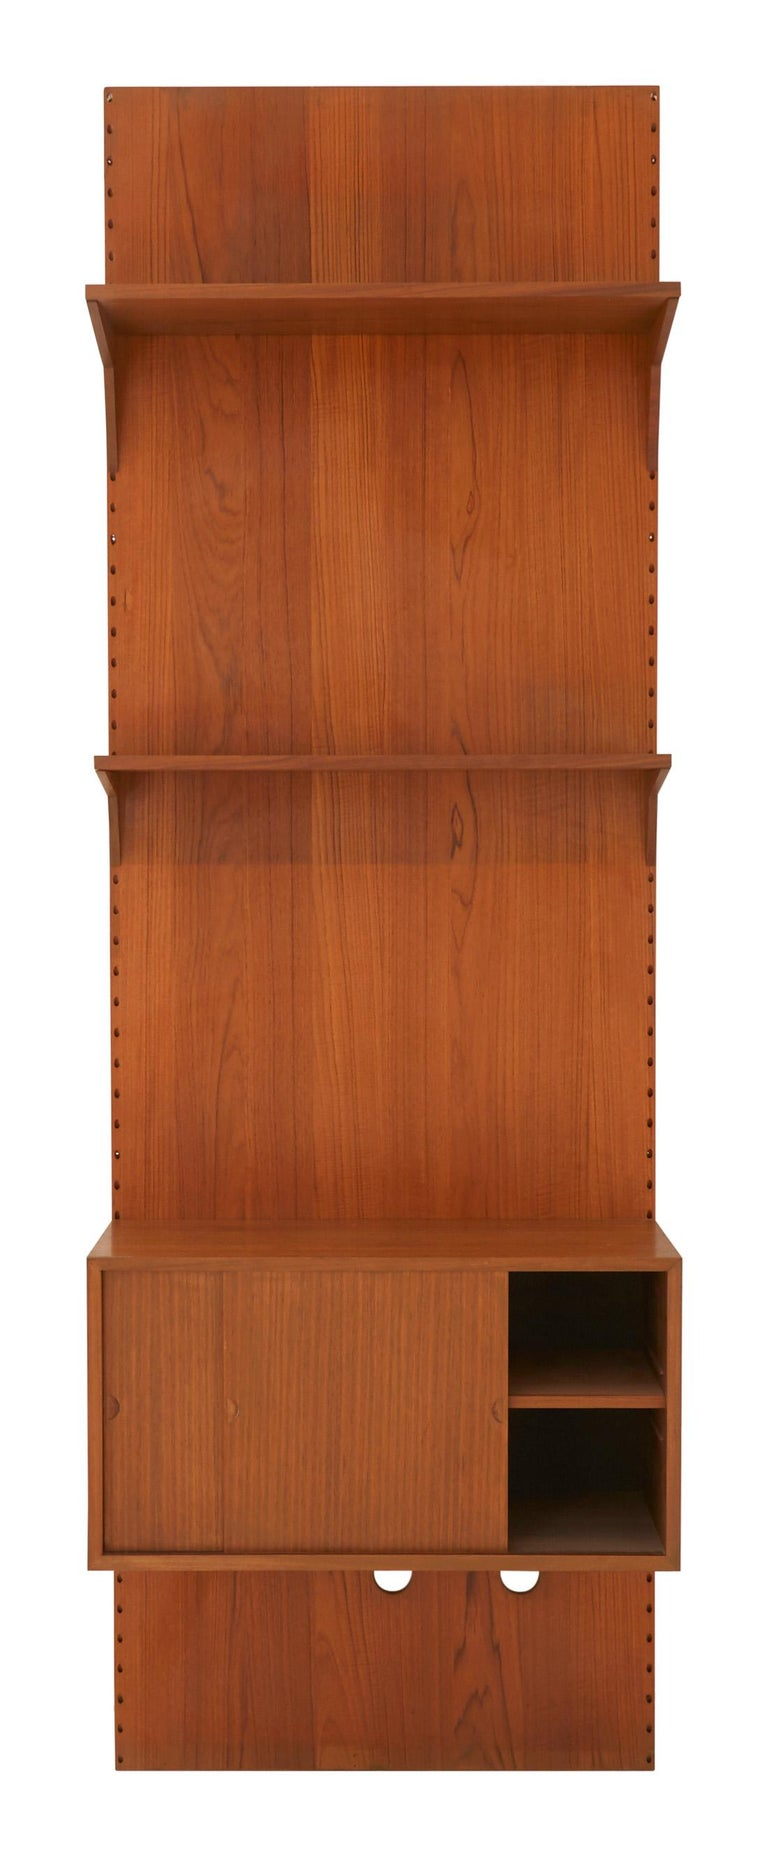 Mid-Century Modern Midcentury Teak Wall Shelving Unit For Sale